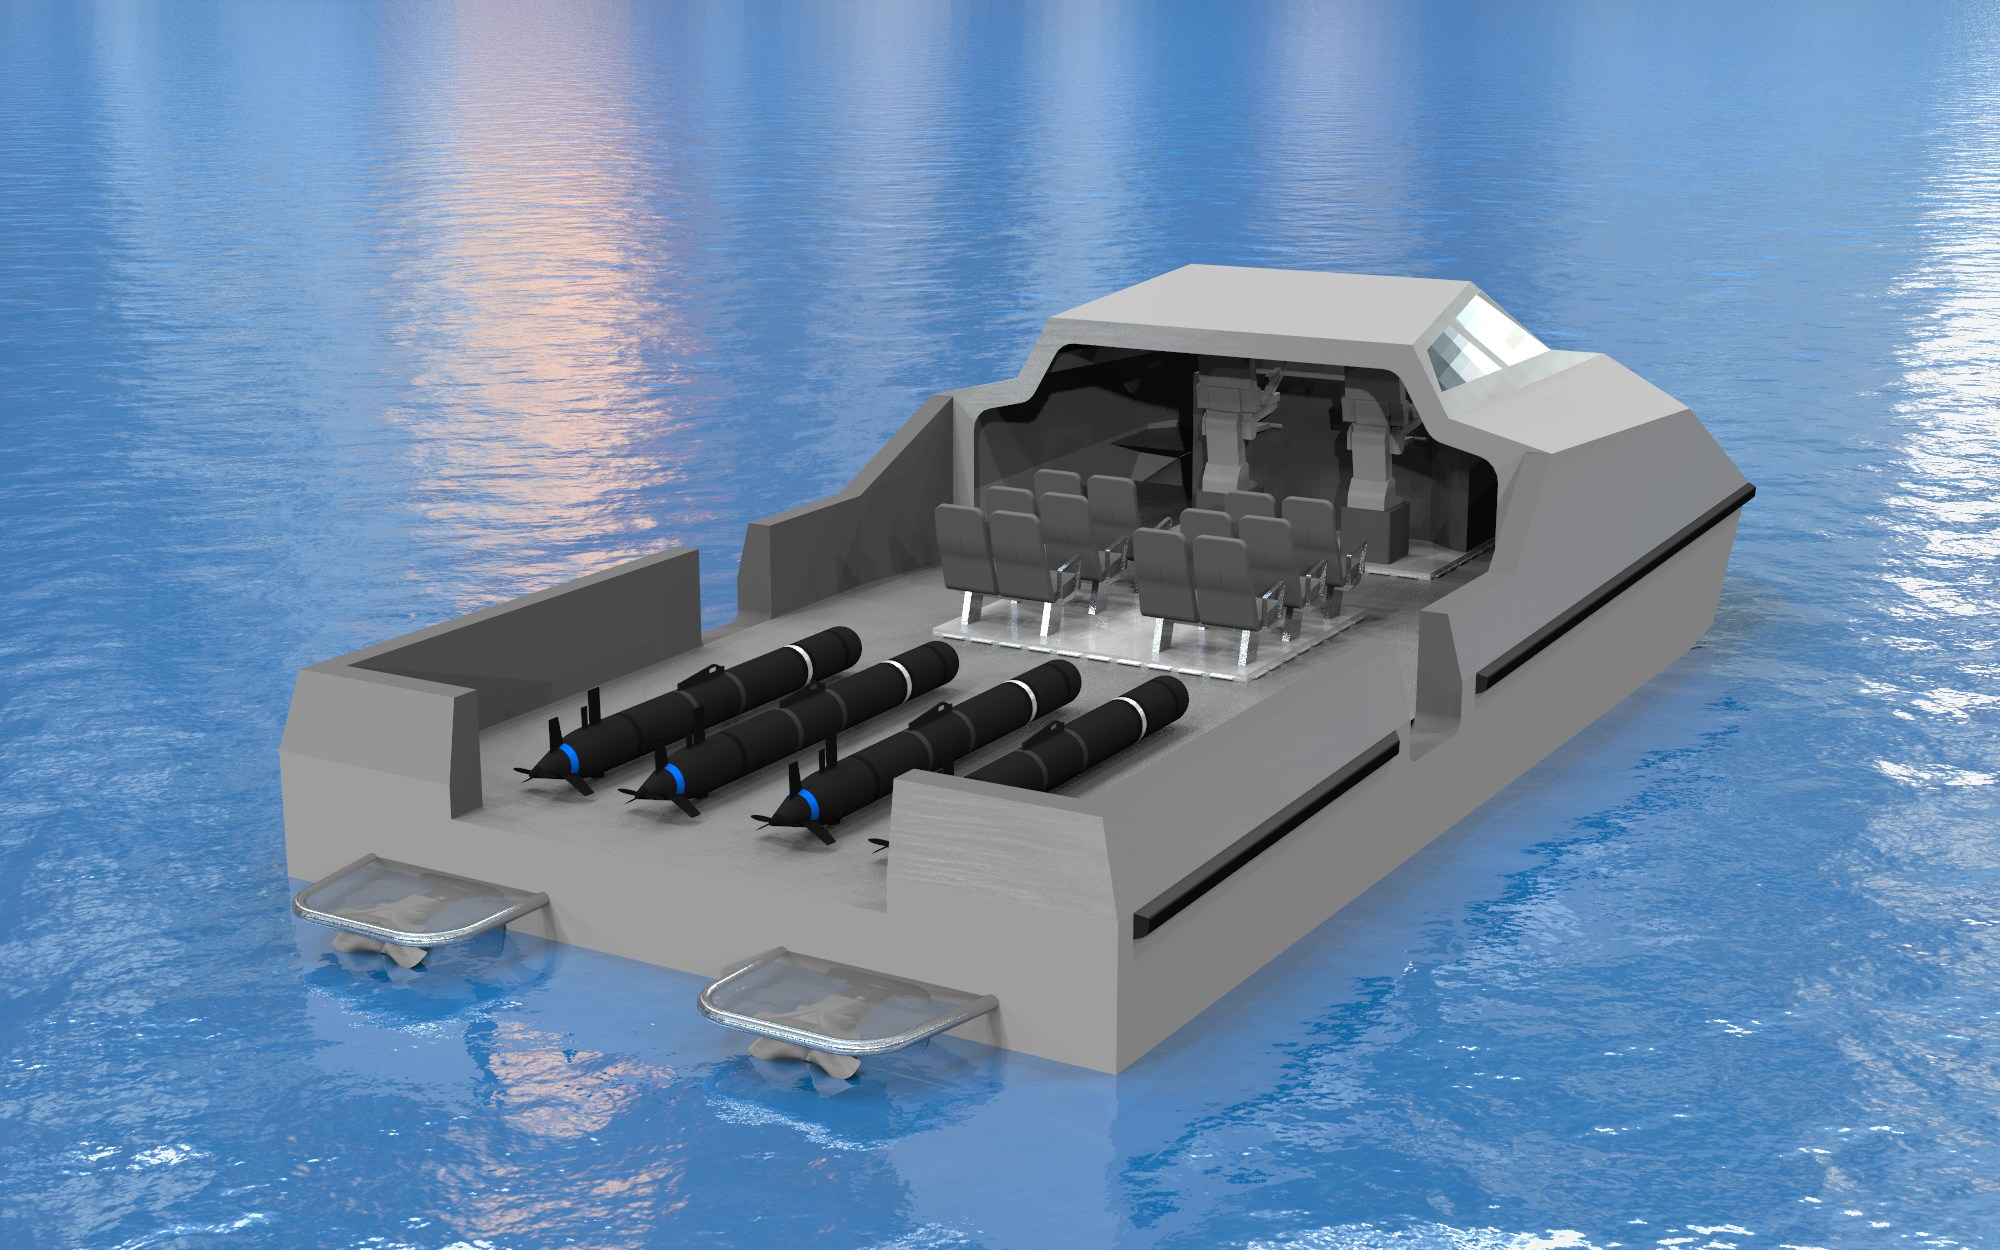 Mshipco Introduces The Mistral Usv During Auvsi S Unmanned